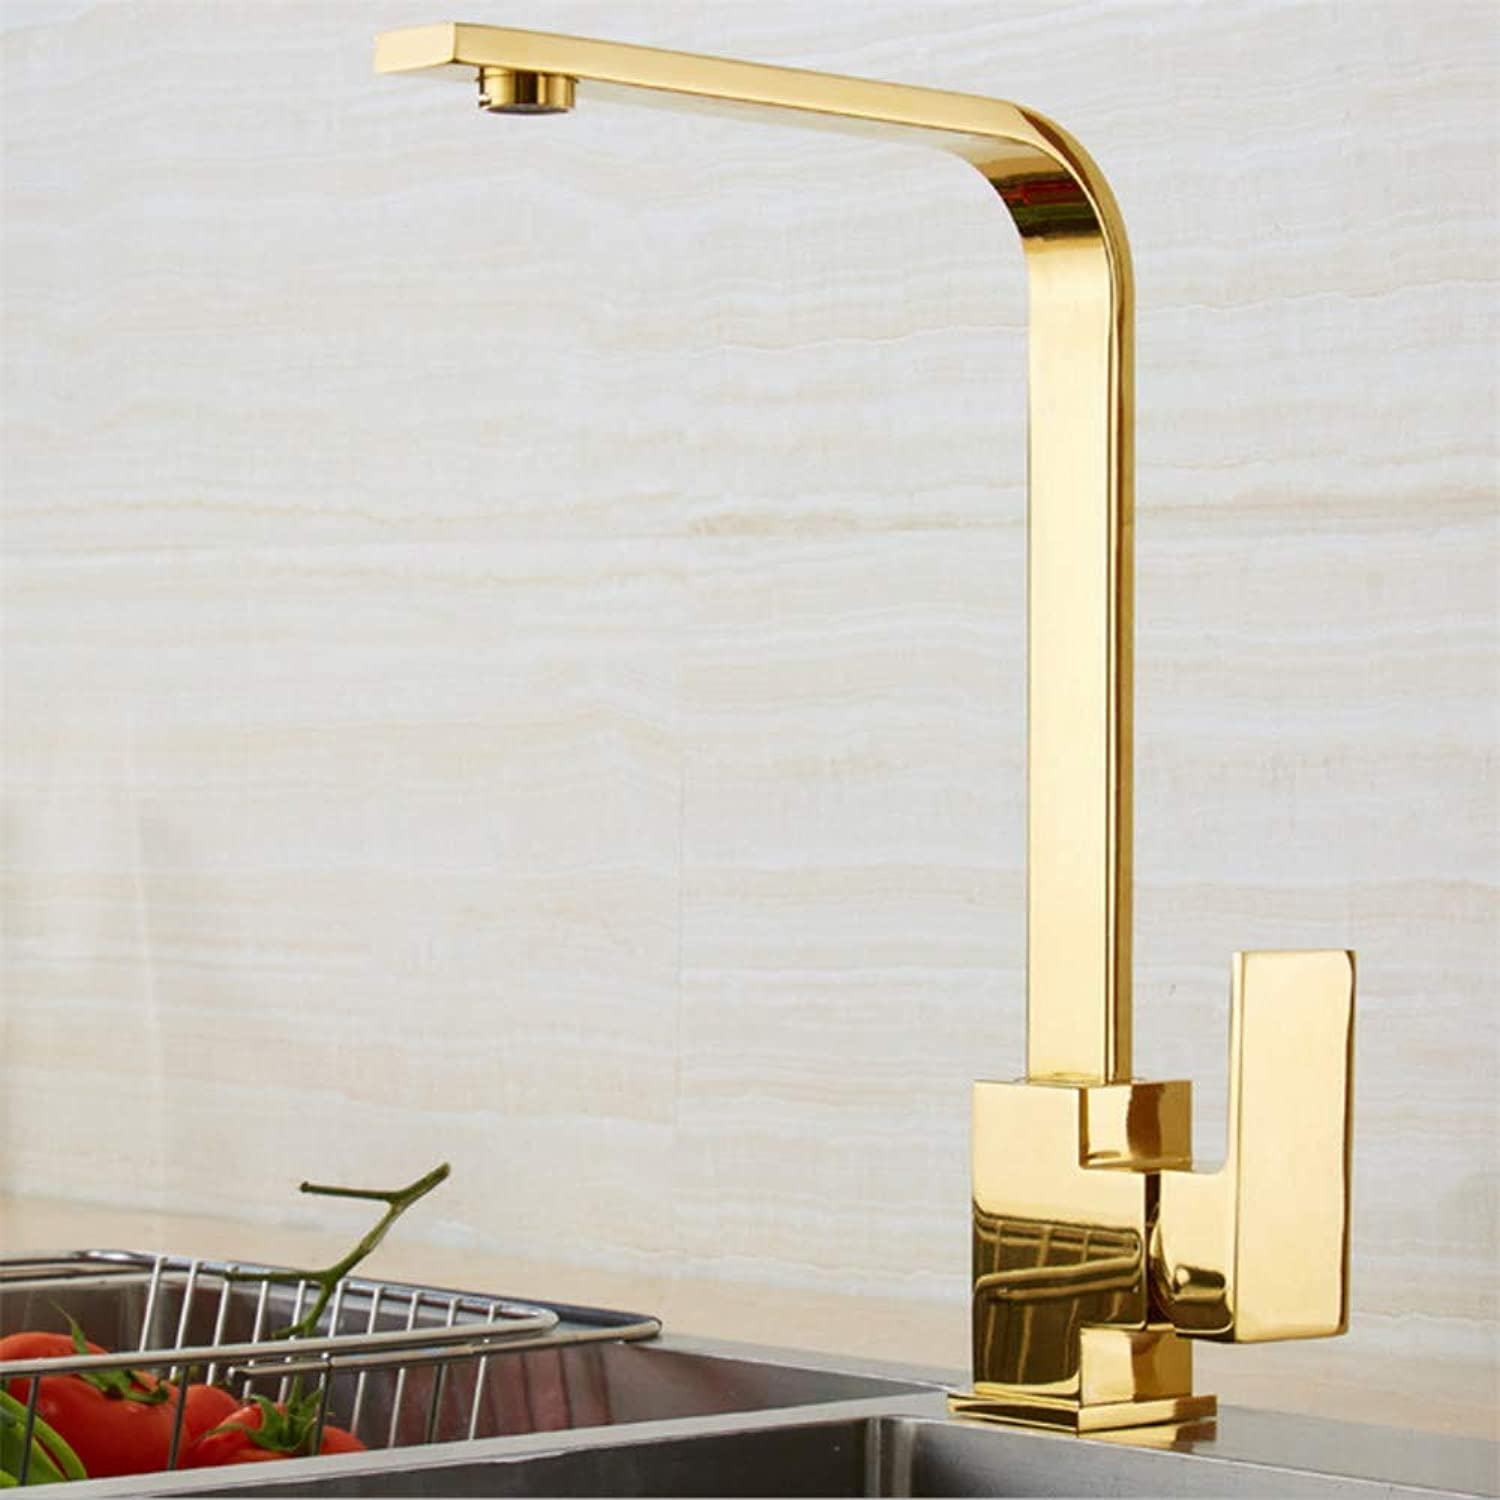 Retro Bathroom Basin Faucet Copper Simple redating Kitchen Sink Hot and Cold Faucet Nordic American